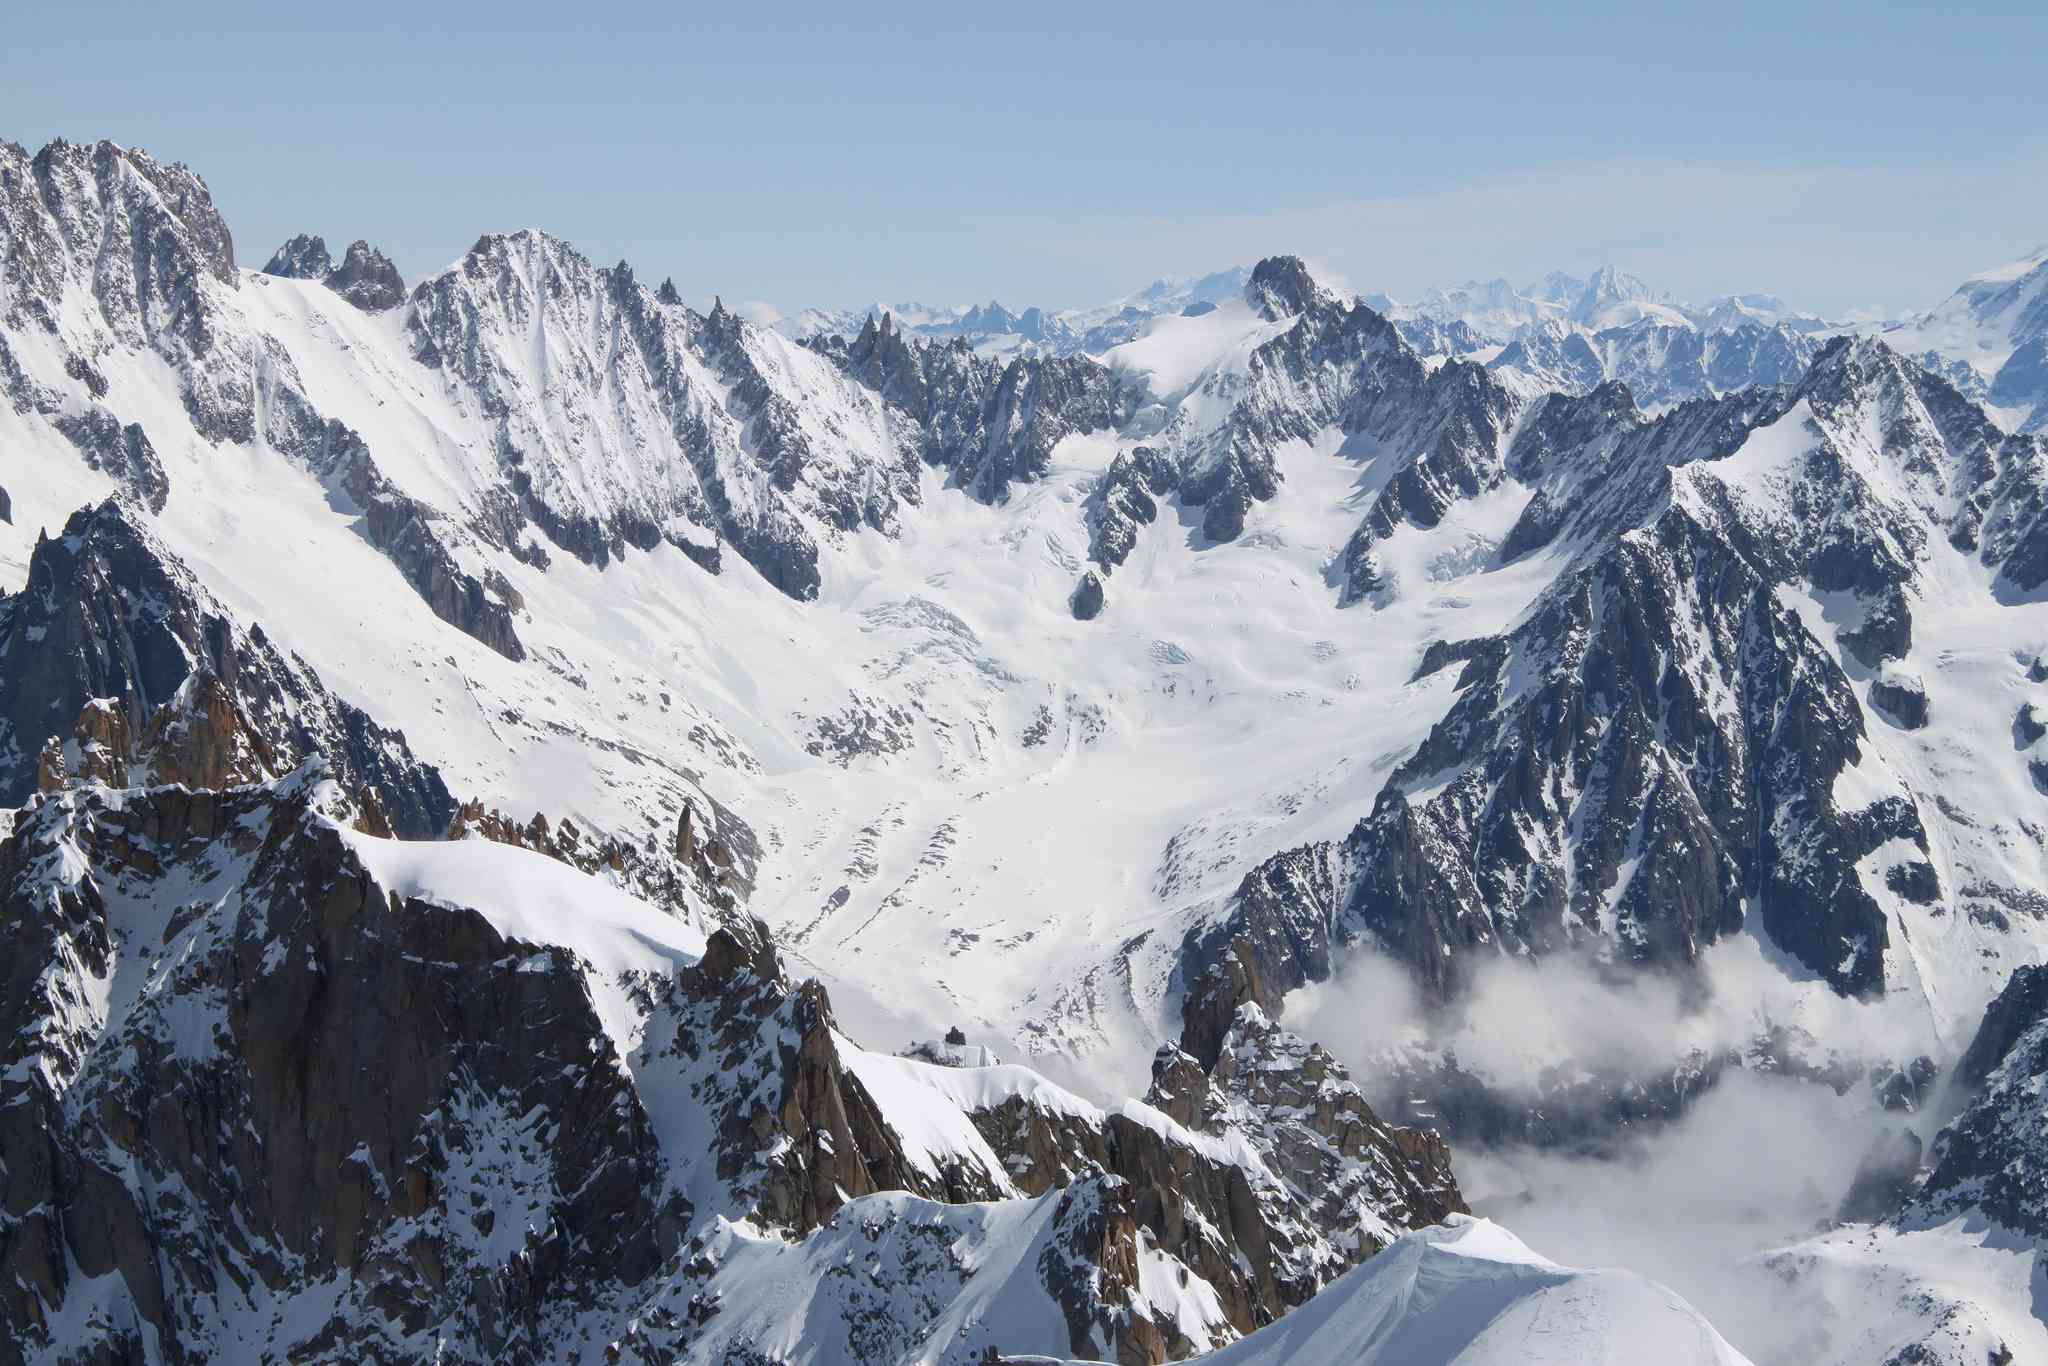 A cirque glacier is formed in a depression on a mountainside, such as Glacier de Talefre.